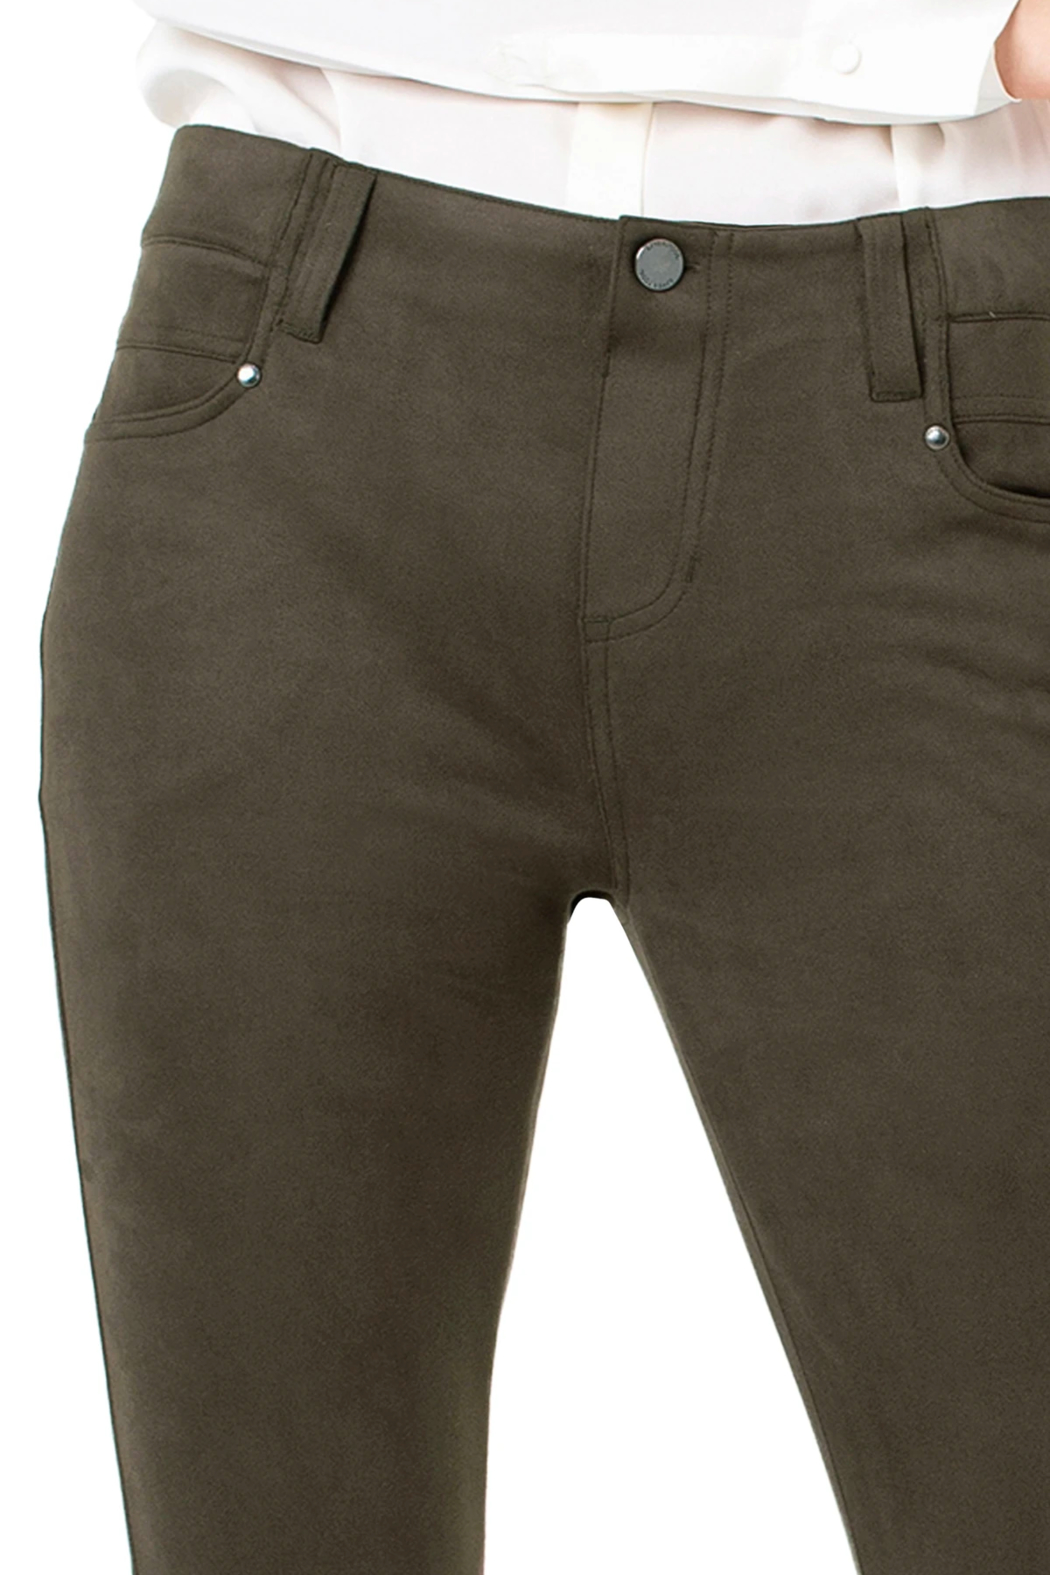 Liverpool Gia Faux-suede Skinnypant - Back Cropped Image